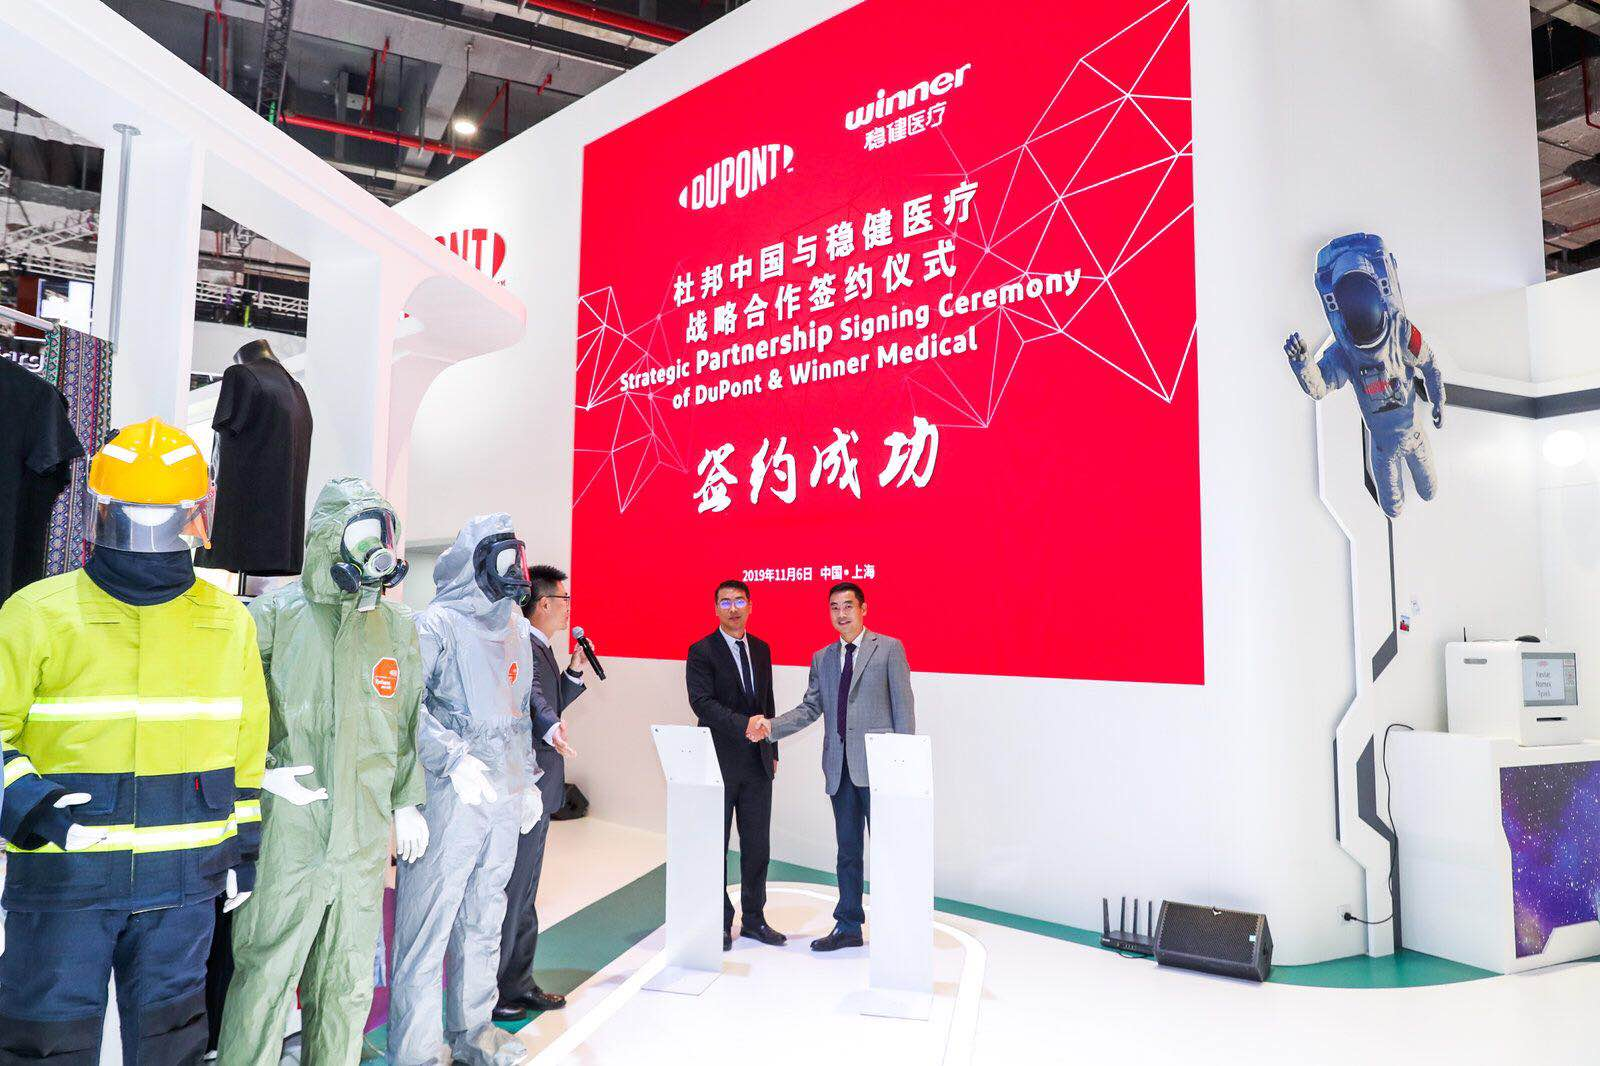 CIIE Coming! Winner and Dupont (China) Reached Strategic Cooperation